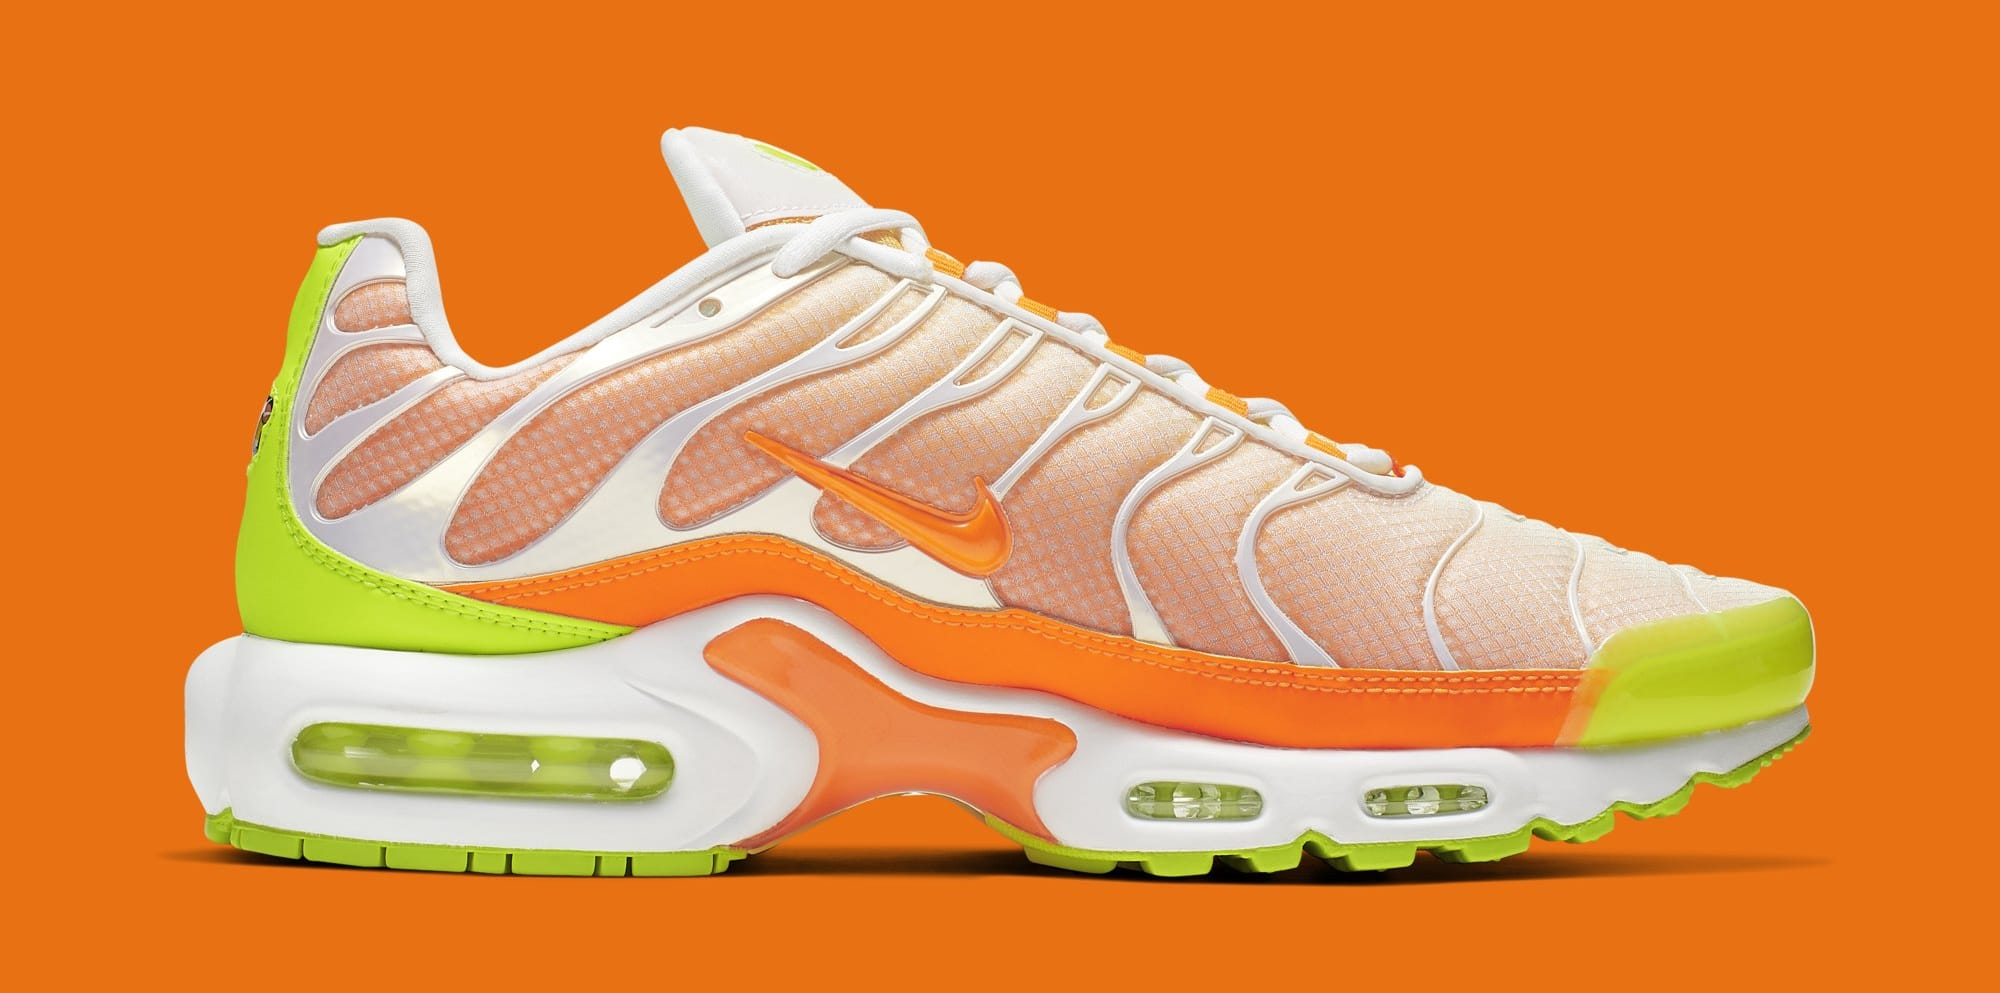 Nike Air Max Plus 'Color Flip/White' CI5925-531 (Medial)